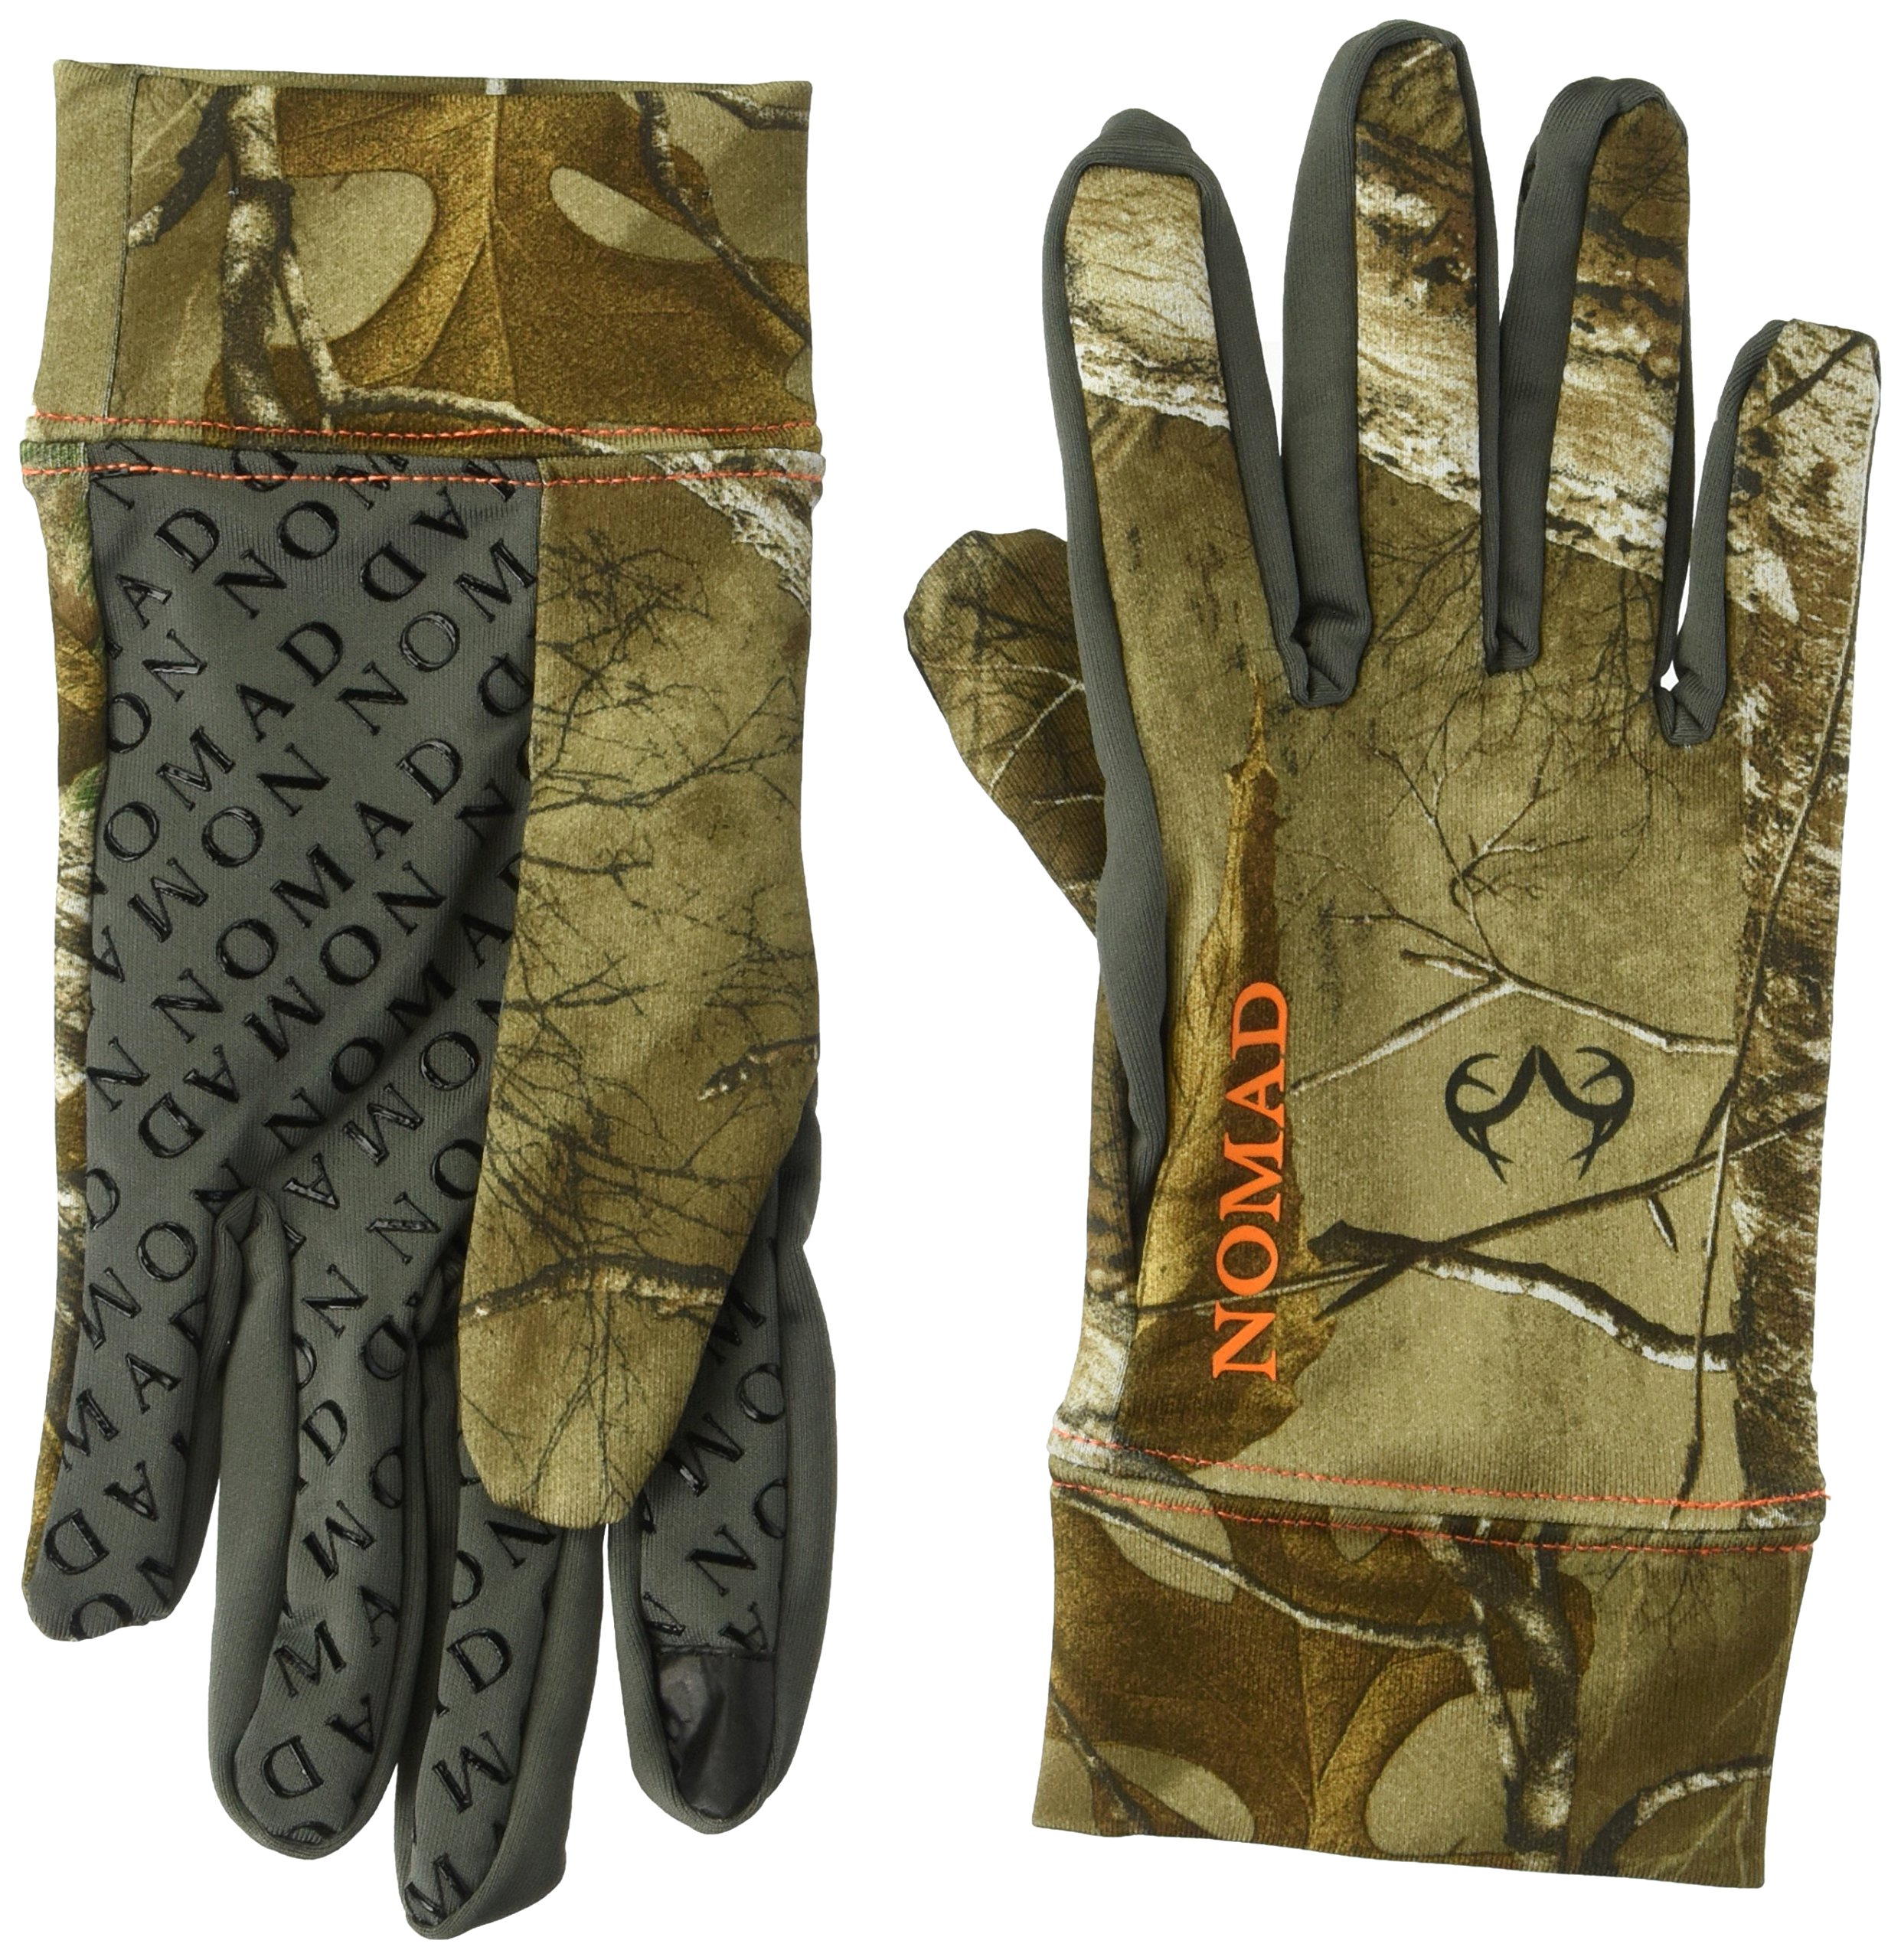 Nomad Heartwood Level 1 Liner Glove, Realtree Xtra, Large/X-Large by Nomad